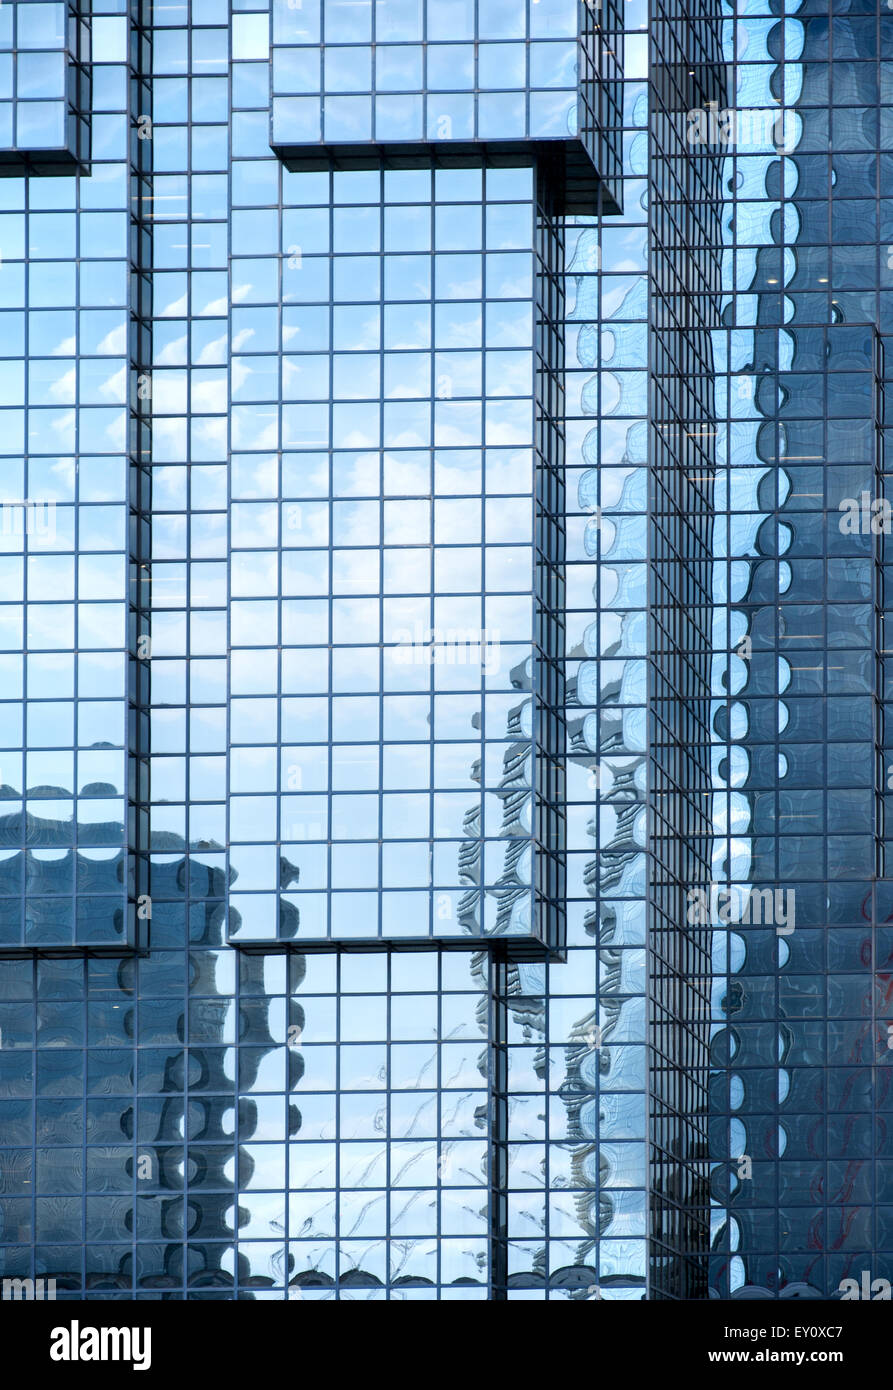 Blue glass wall of a modern skyscraper reflecting other buildings, sky and white clouds - Stock Image